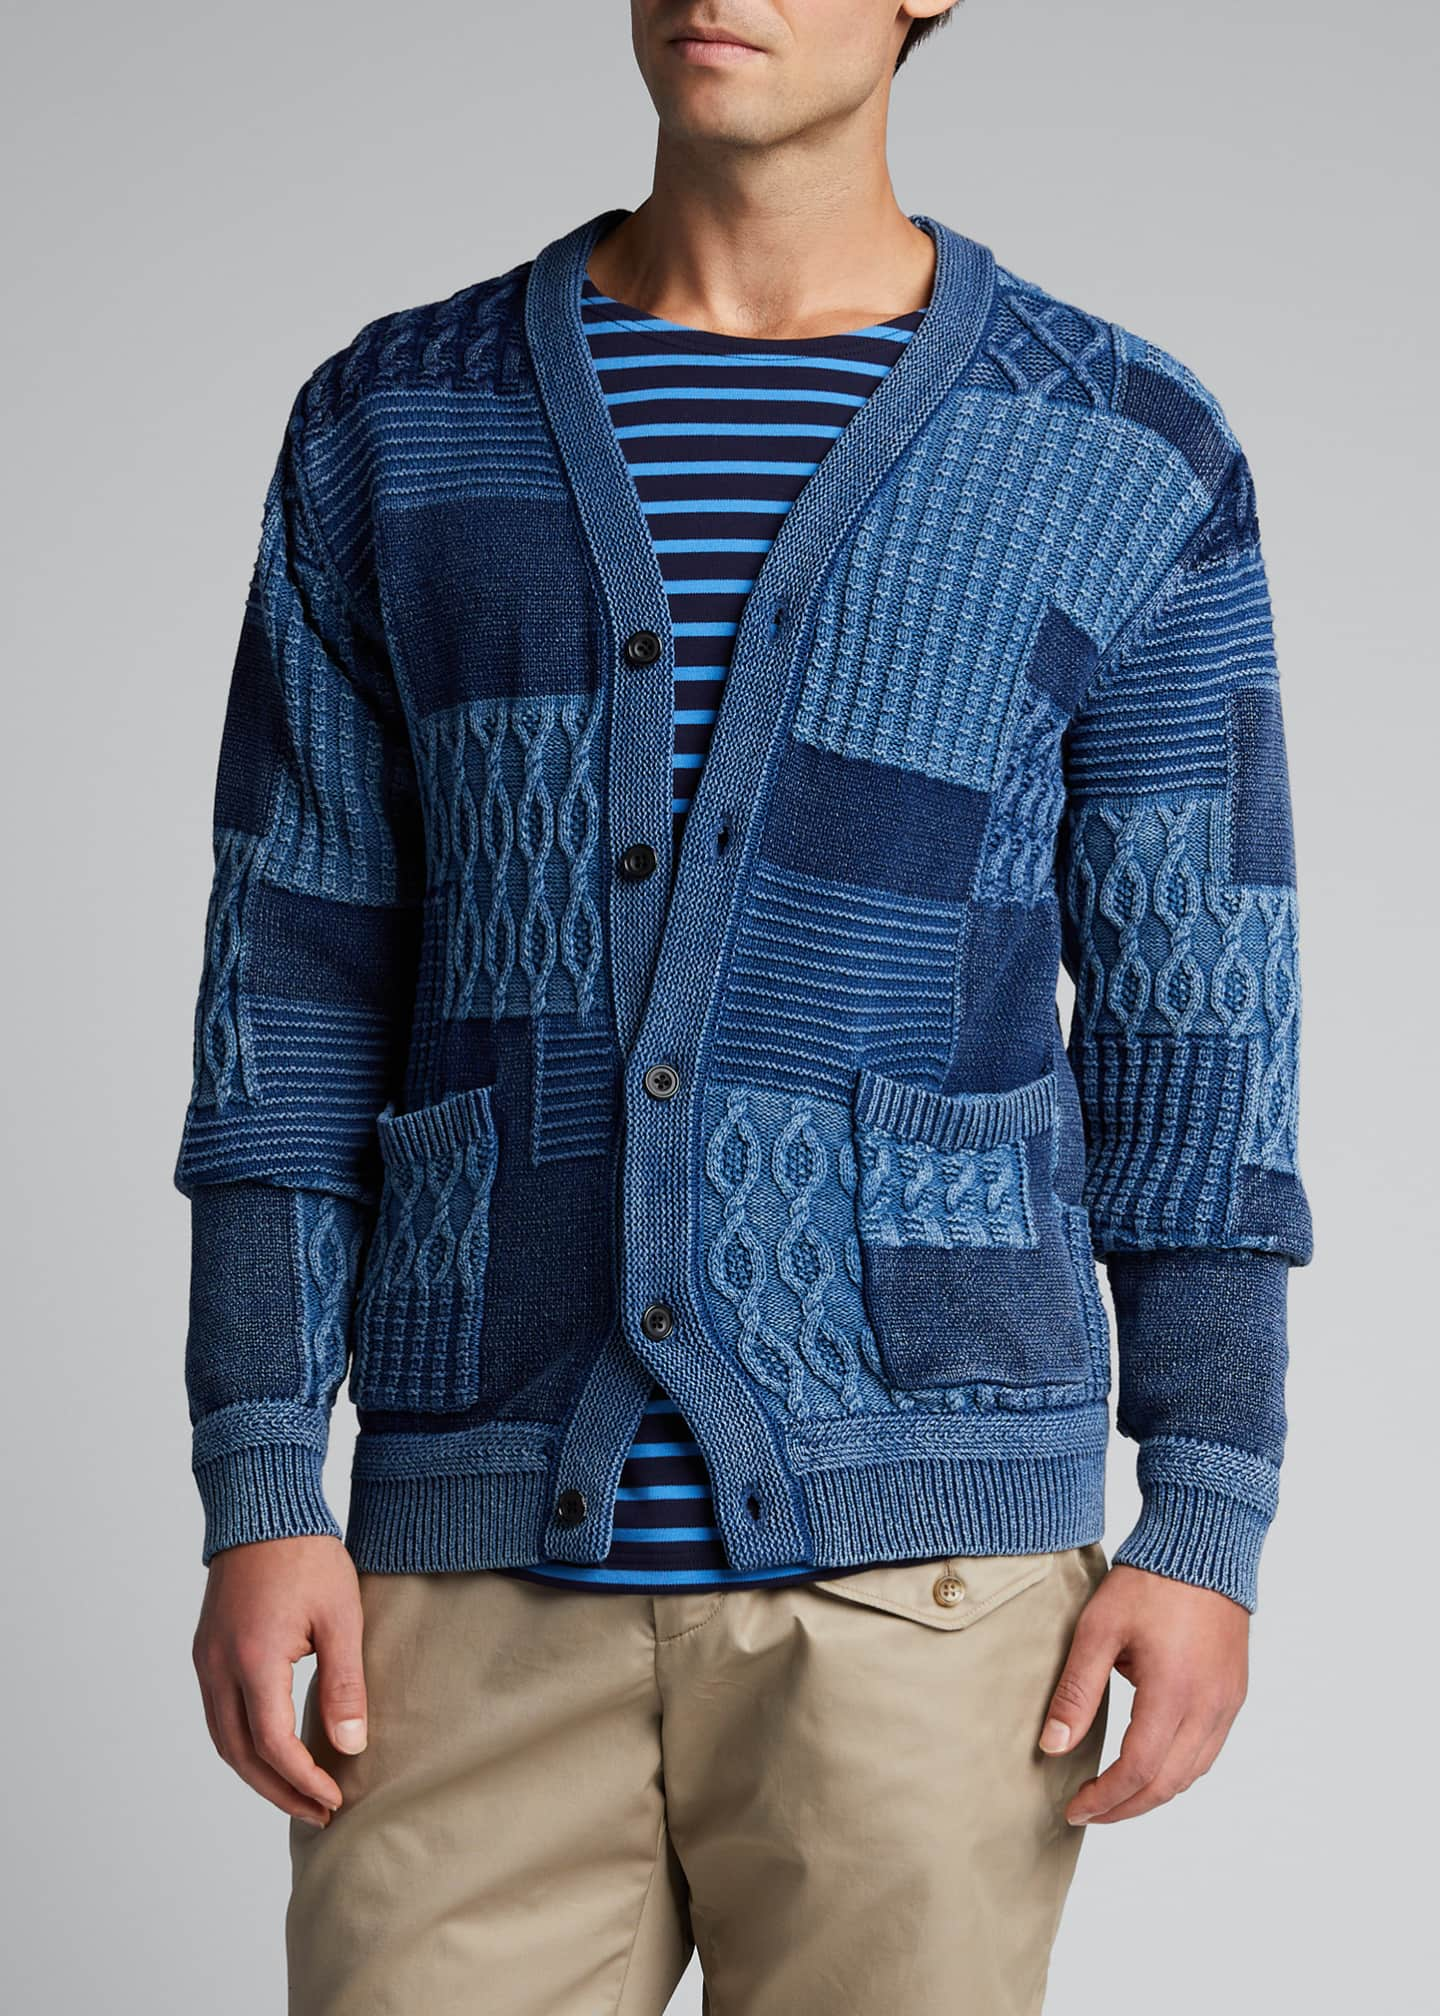 Image 3 of 5: Men's Patchwork Cable Cardigan Sweater